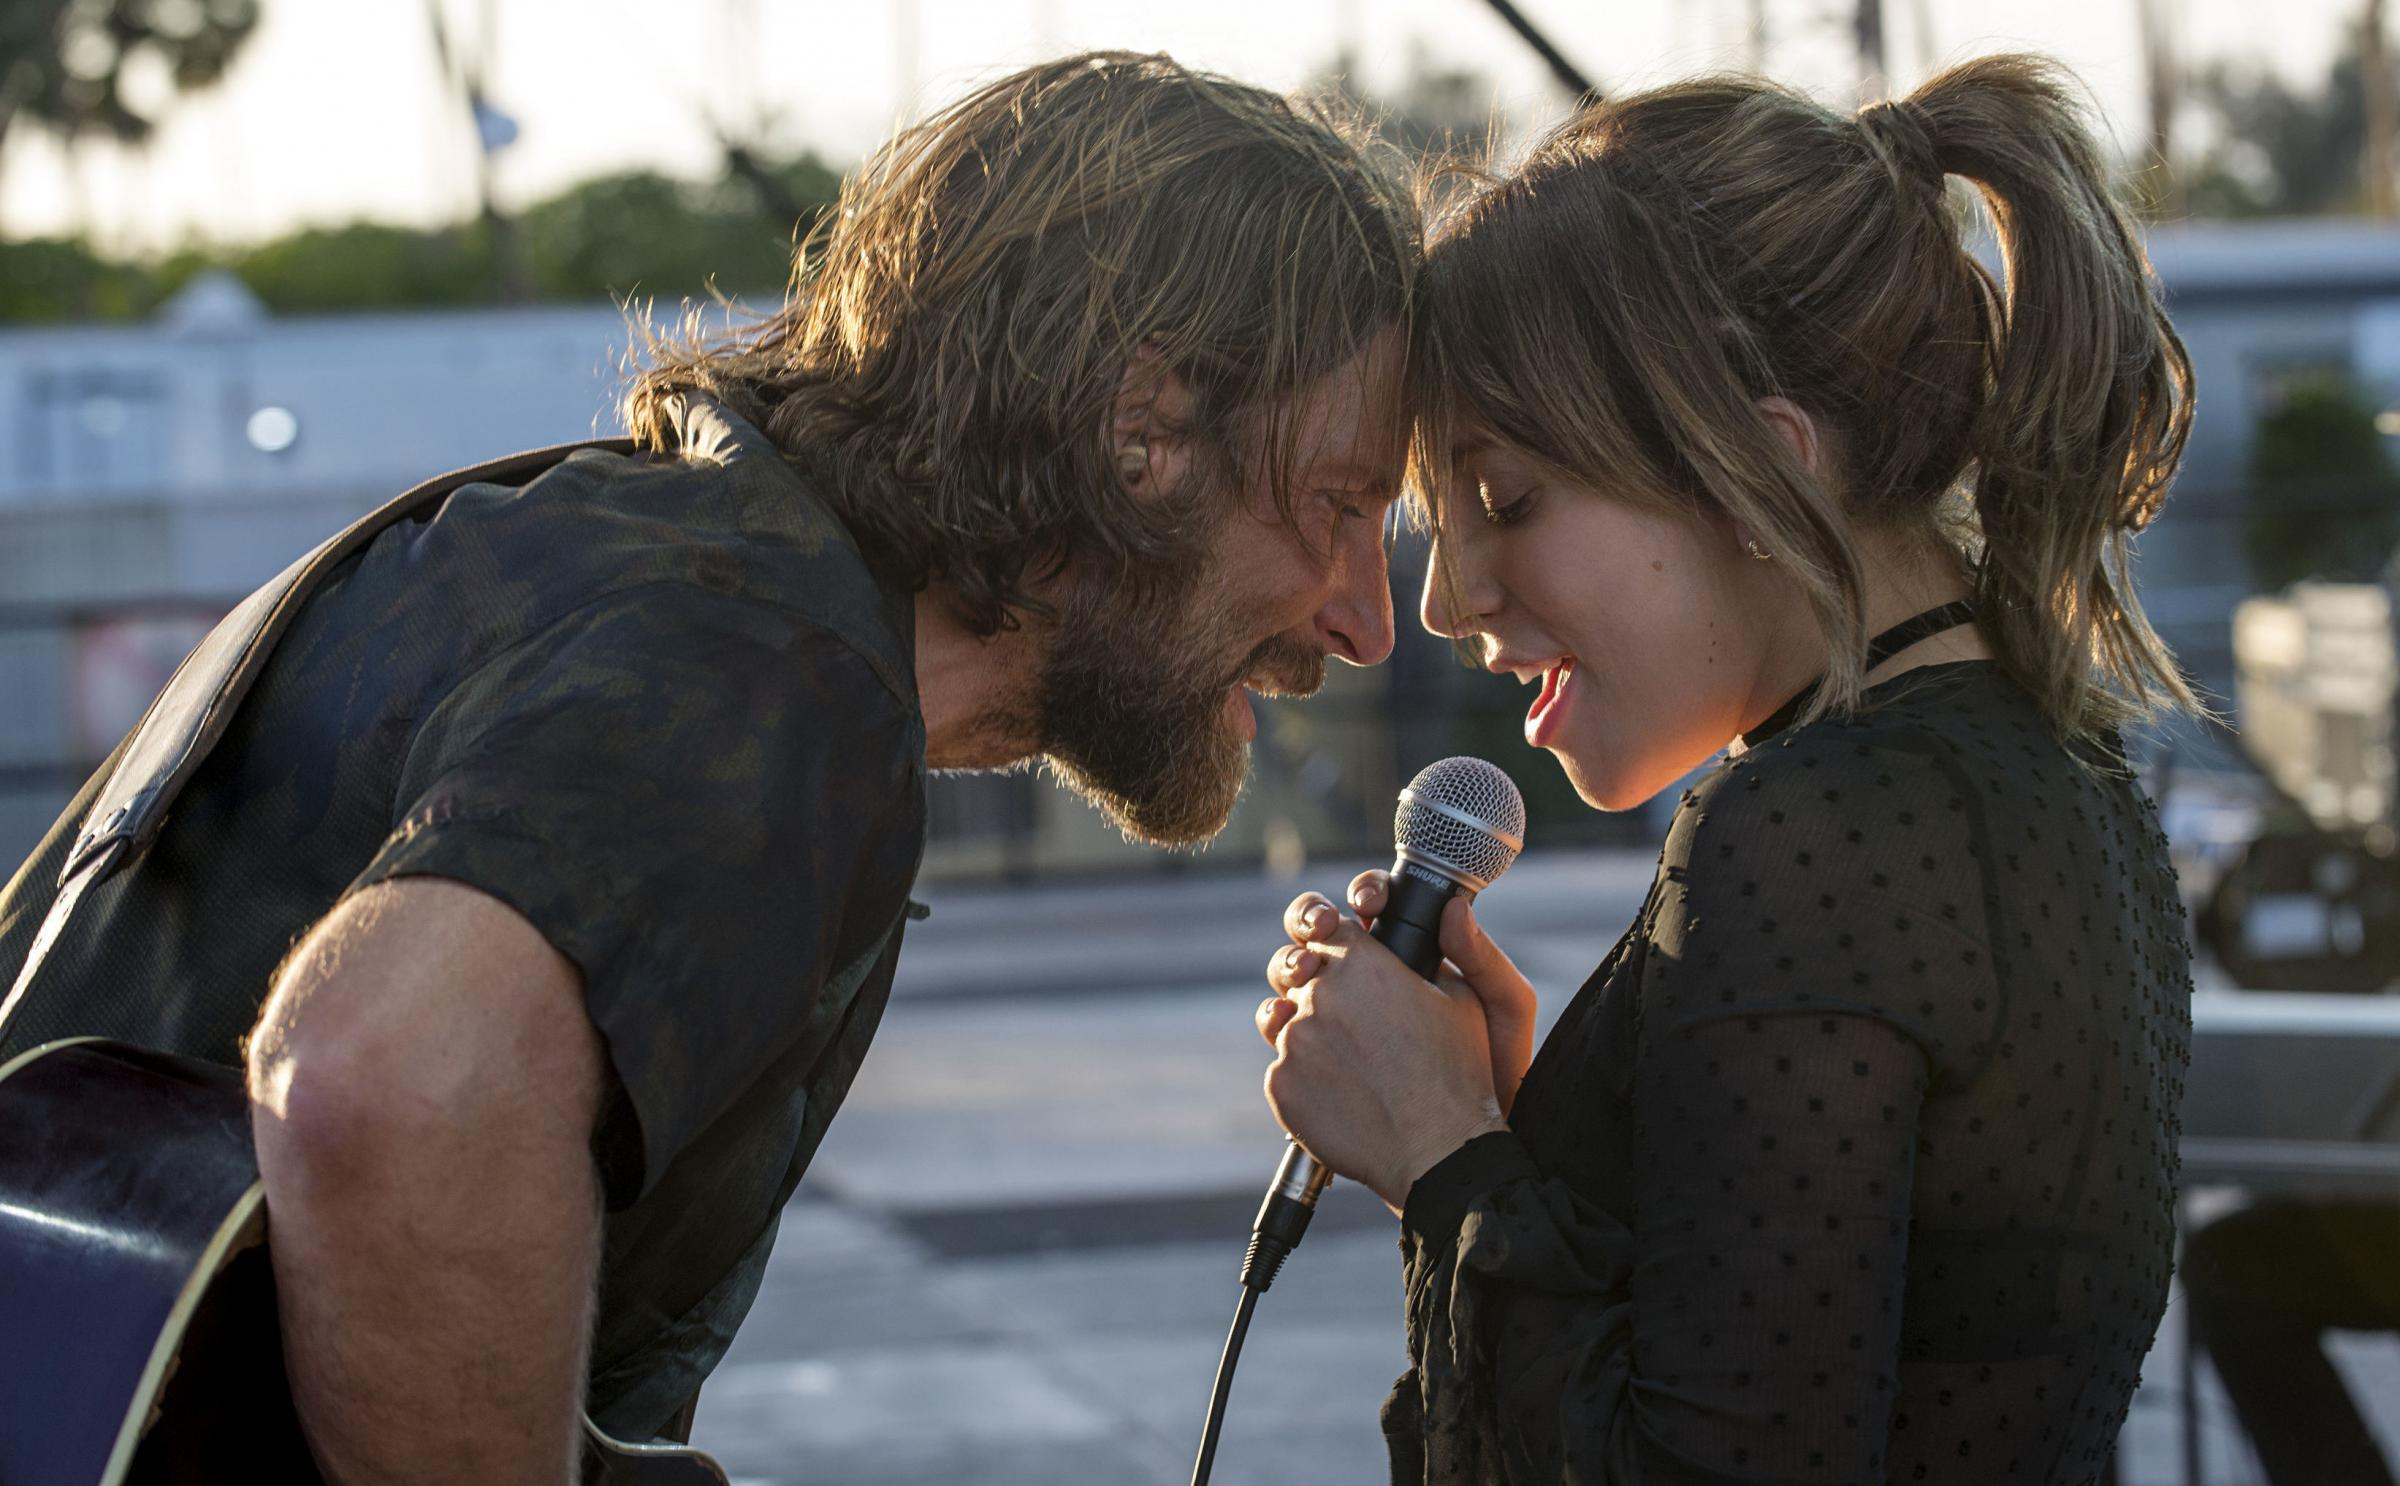 Cooper and Gaga are captivating in A Star Is Born